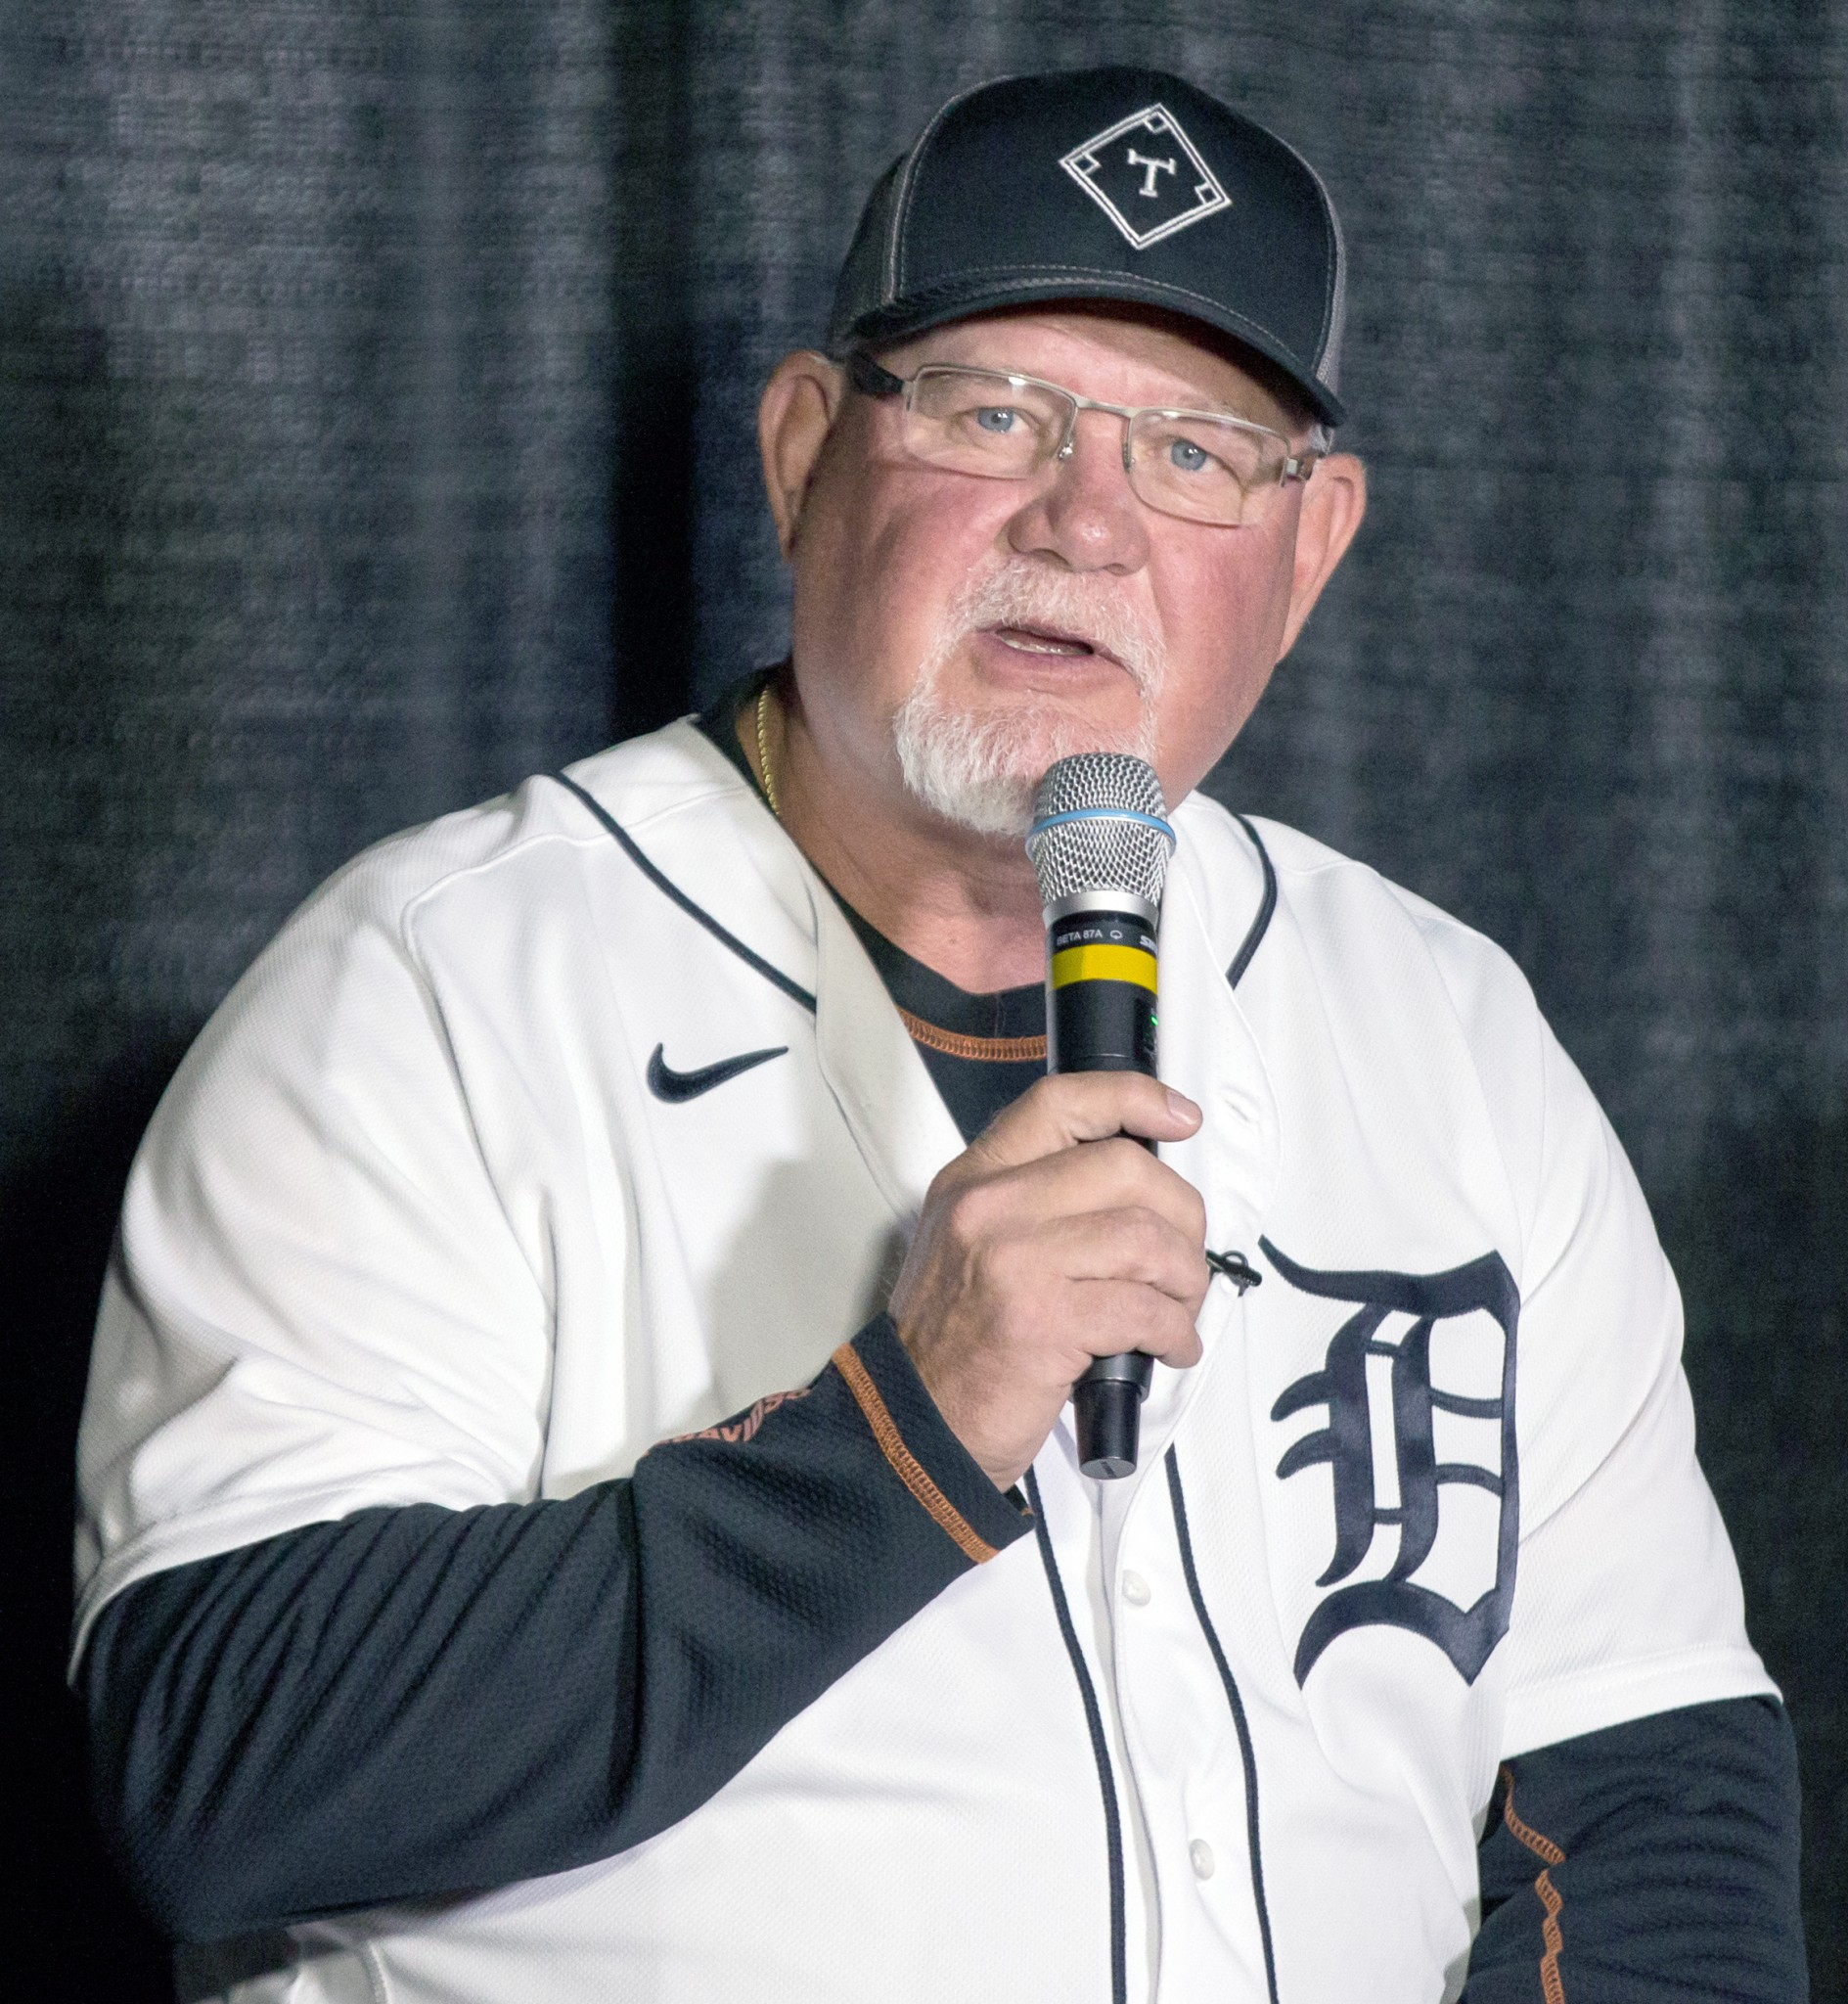 Detroit Tigers Manager Ron Gardenhire. (Press file photo by Scott Grau/courtesy Toledo Mud Hens)